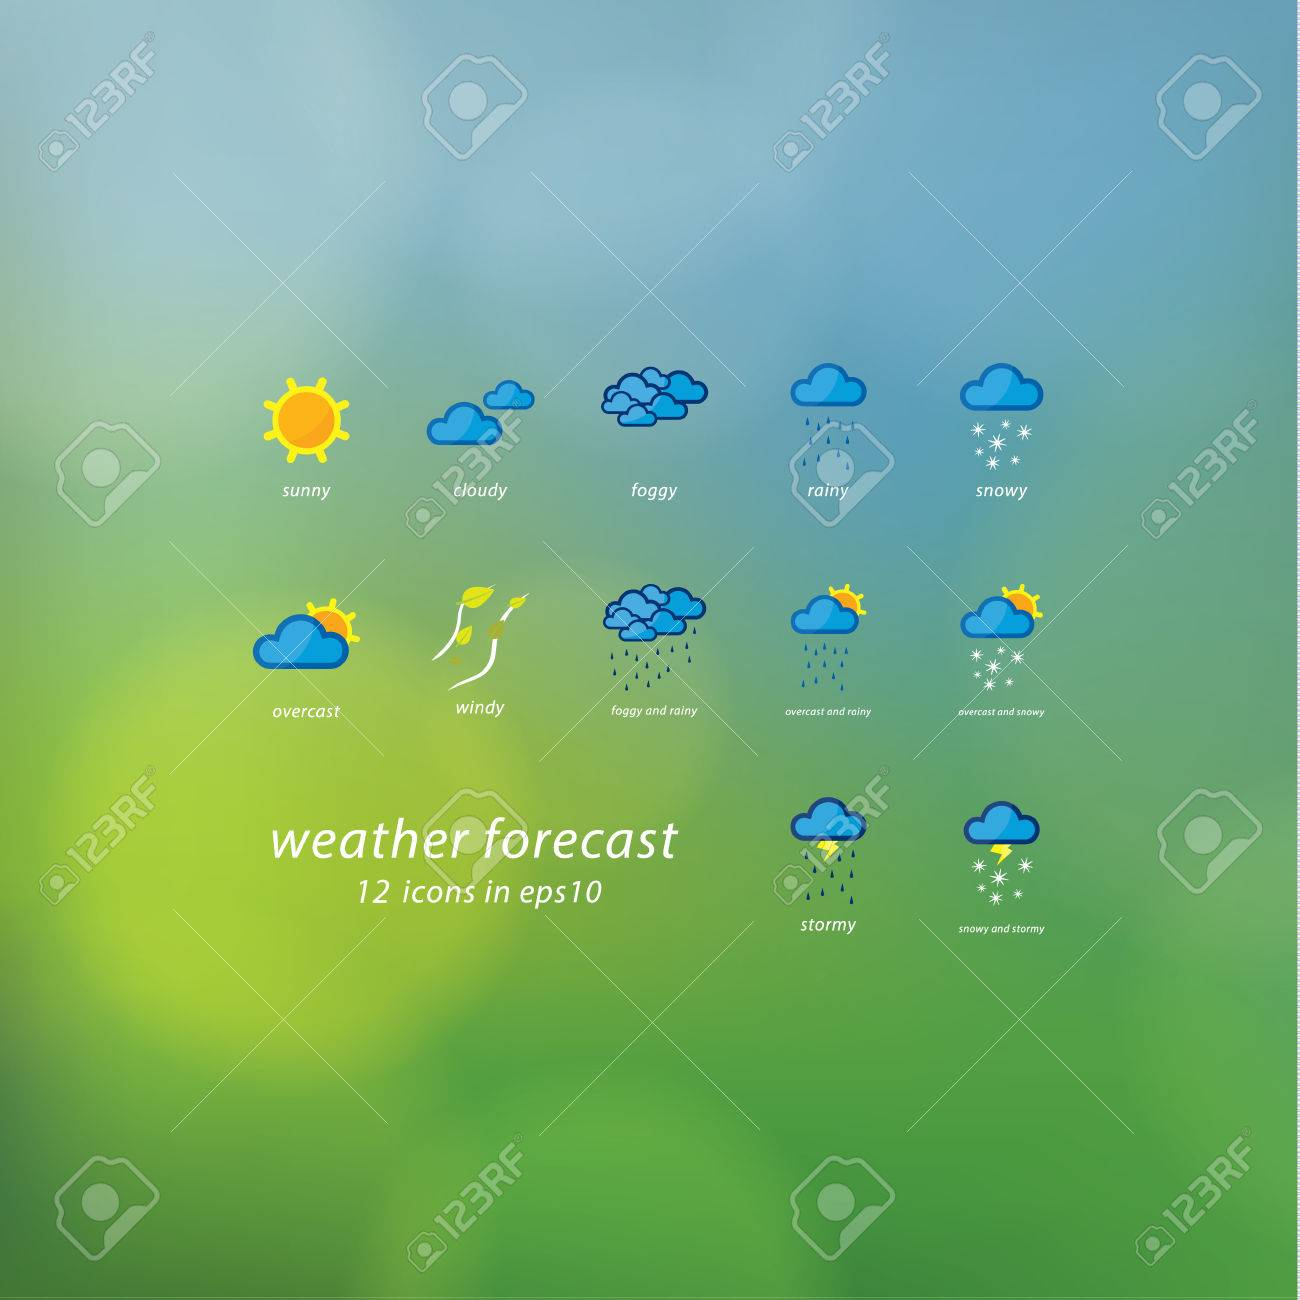 Weather forecast icons. Vector icons - stylized weather events. Thematic symbols on natural vector blurred background. Sizable, editable icons. Stock Vector - 25512805